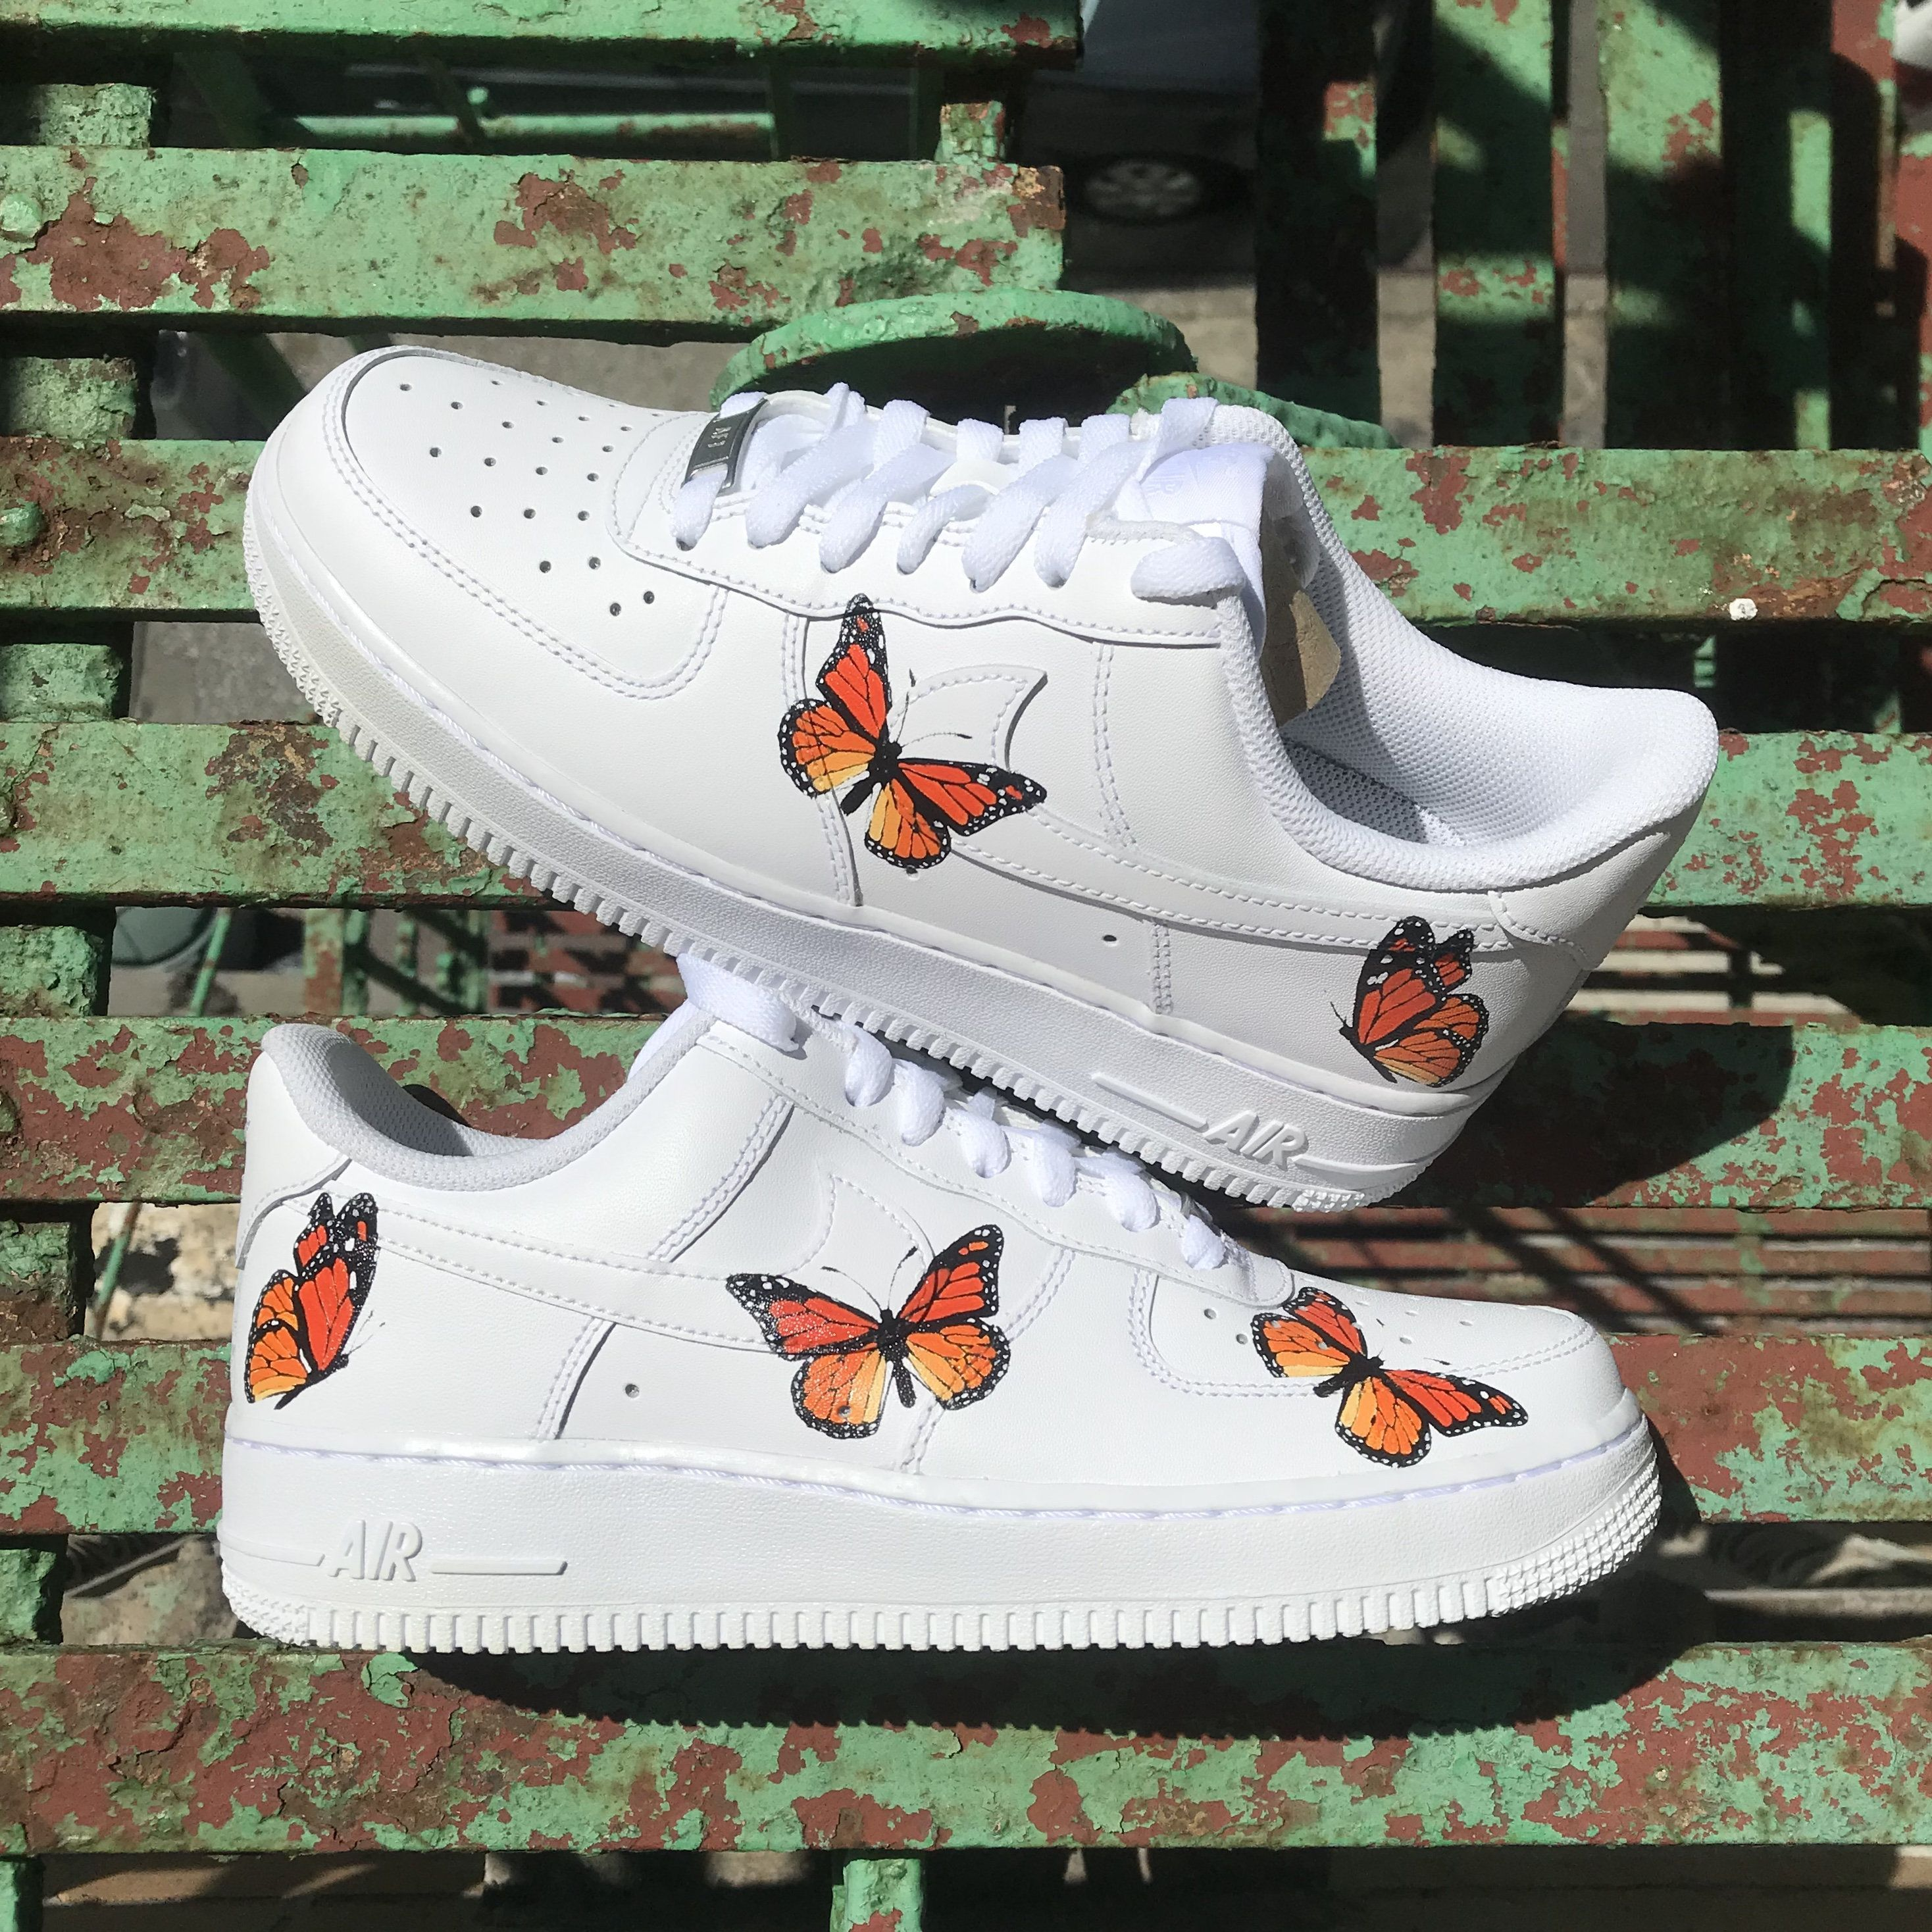 Custom Air Force 1 Nike Butterfly Shoes Customs Shoes